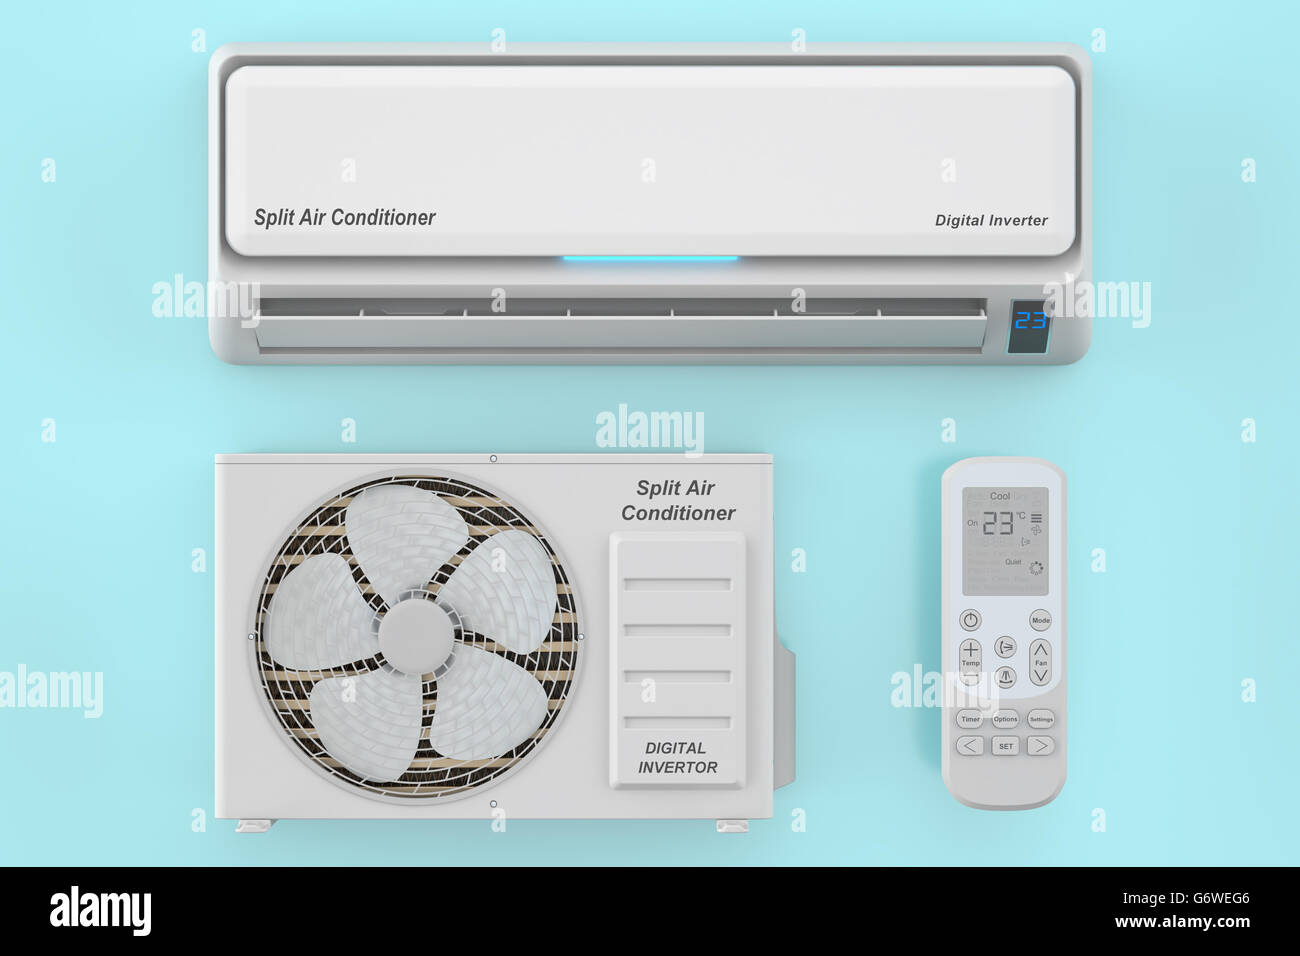 Modern Air Conditioner System With Unit And Remote Control, 3D Rendering